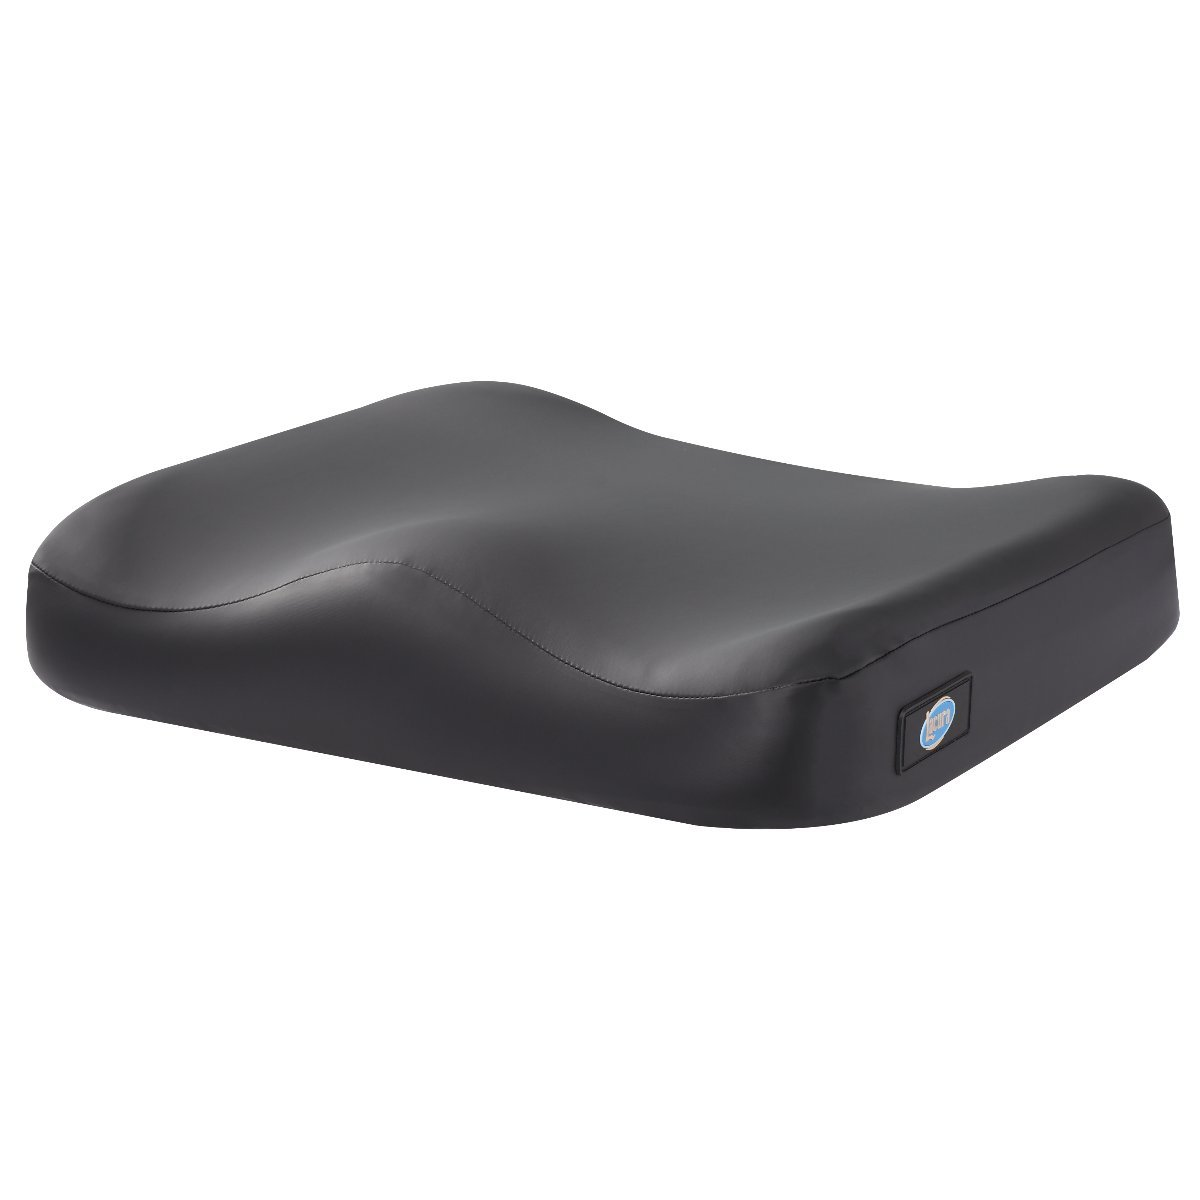 Lacura Profile Cushion, Seat Pillow that Contours the Lower Body to Provide Comfort and Support, Antimicrobial Cover with Attachment Straps, Useful for Seat and Wheelchair Comfort